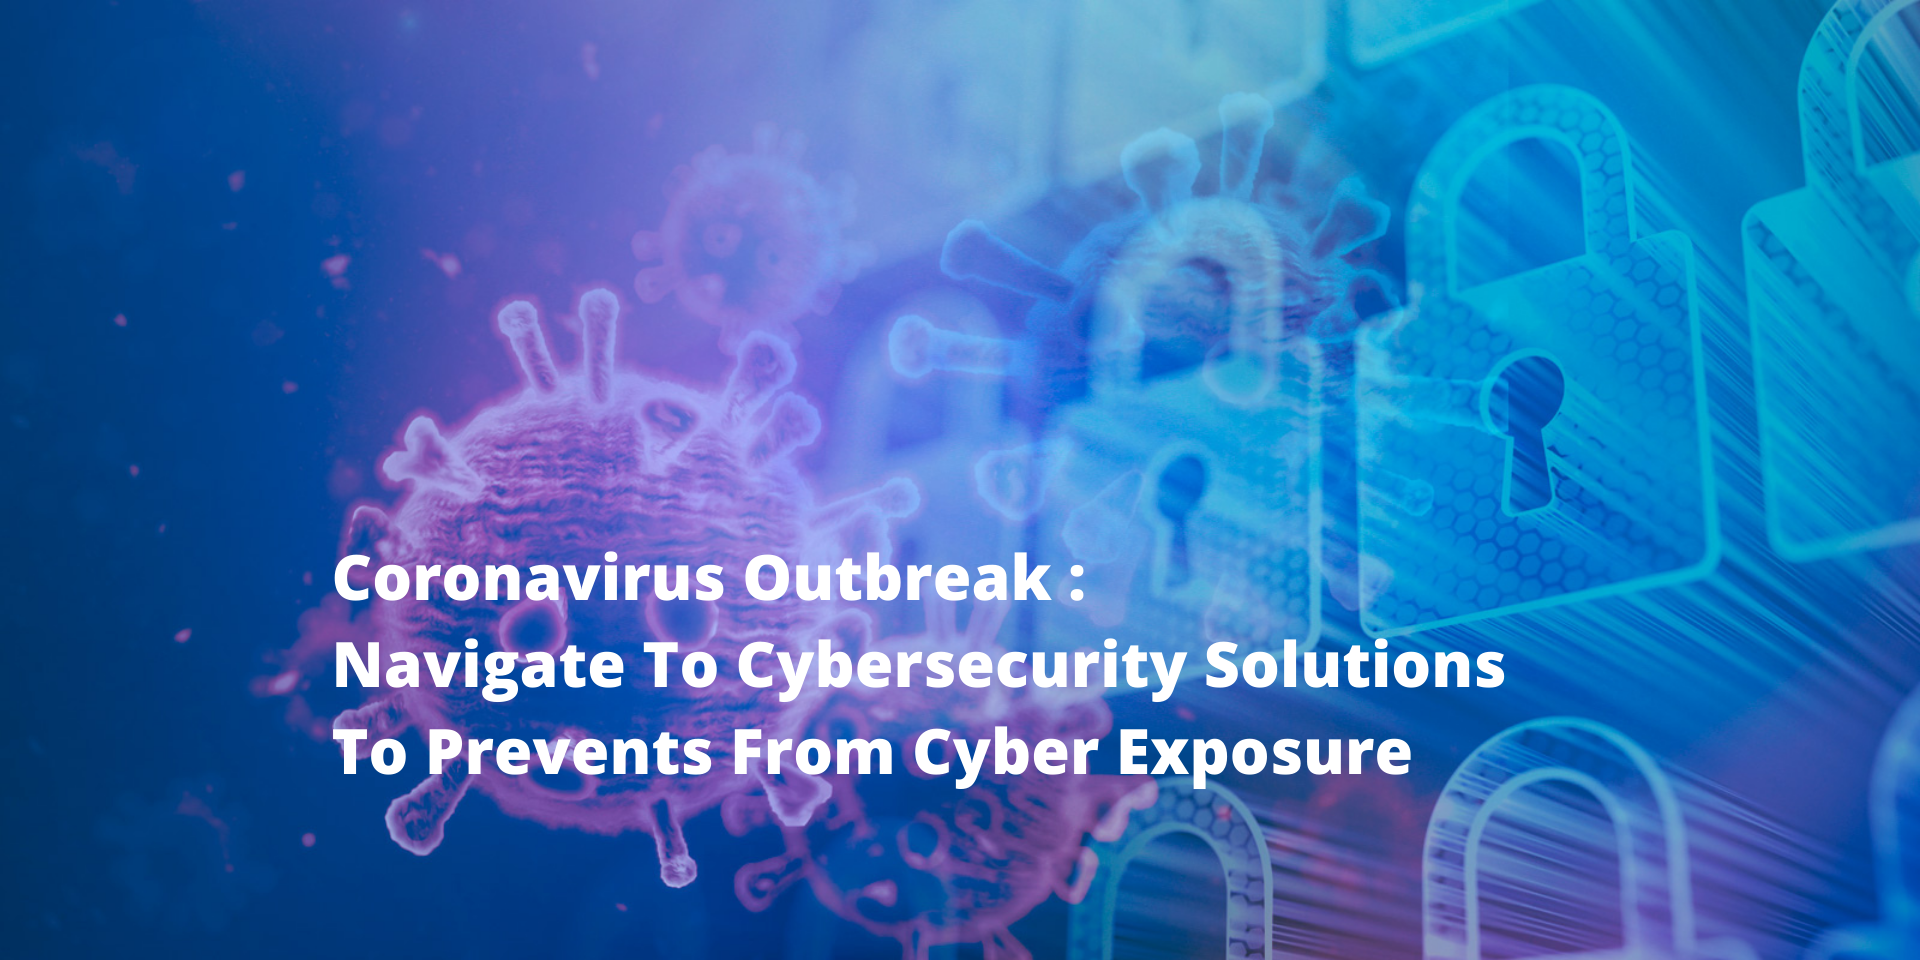 Coronavirus: Cybersecurity solutions